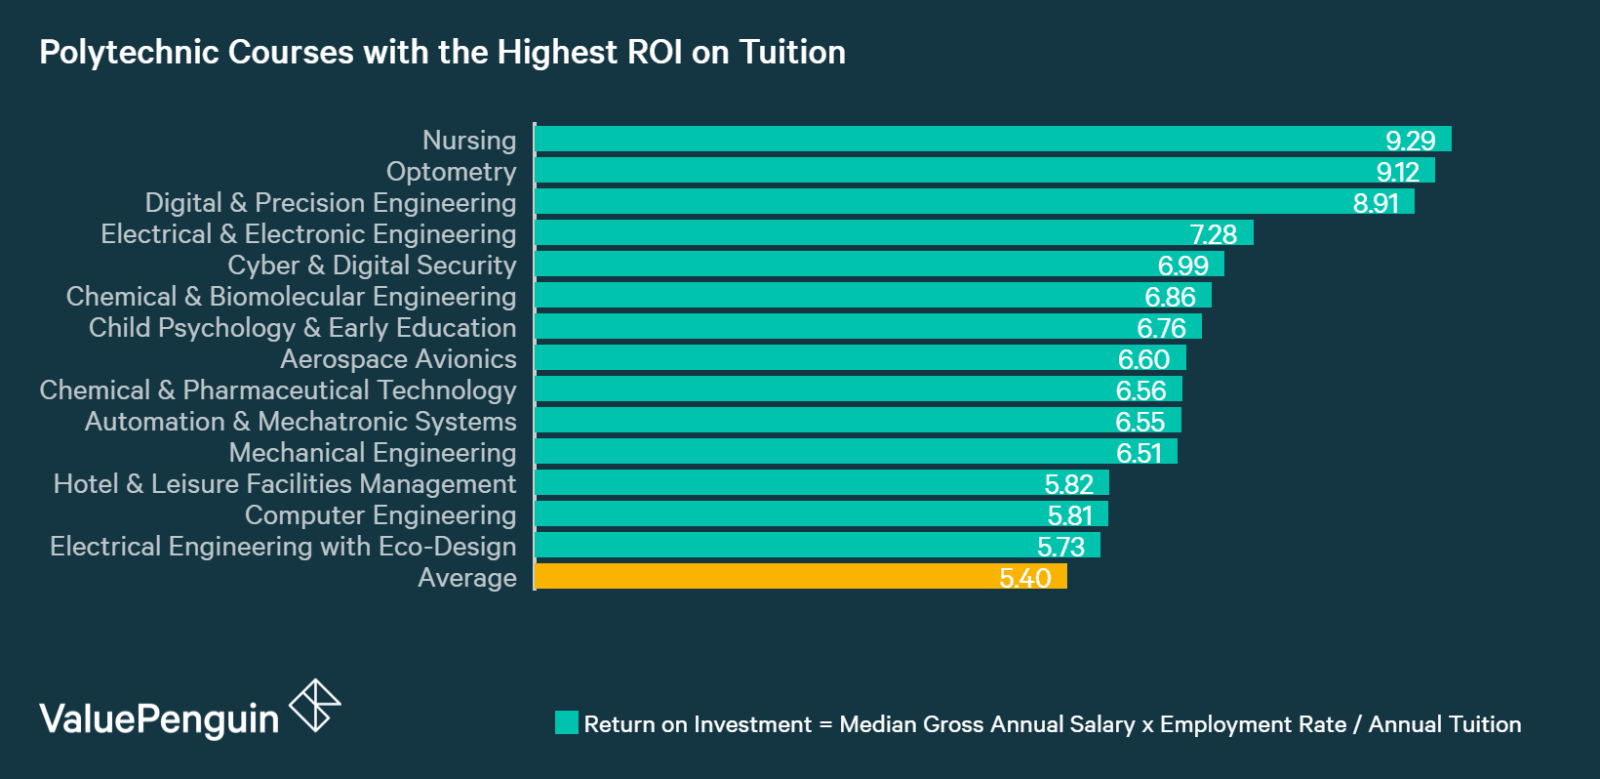 This graph shows which polytech courses have the highest return on tuition immediately after graduation